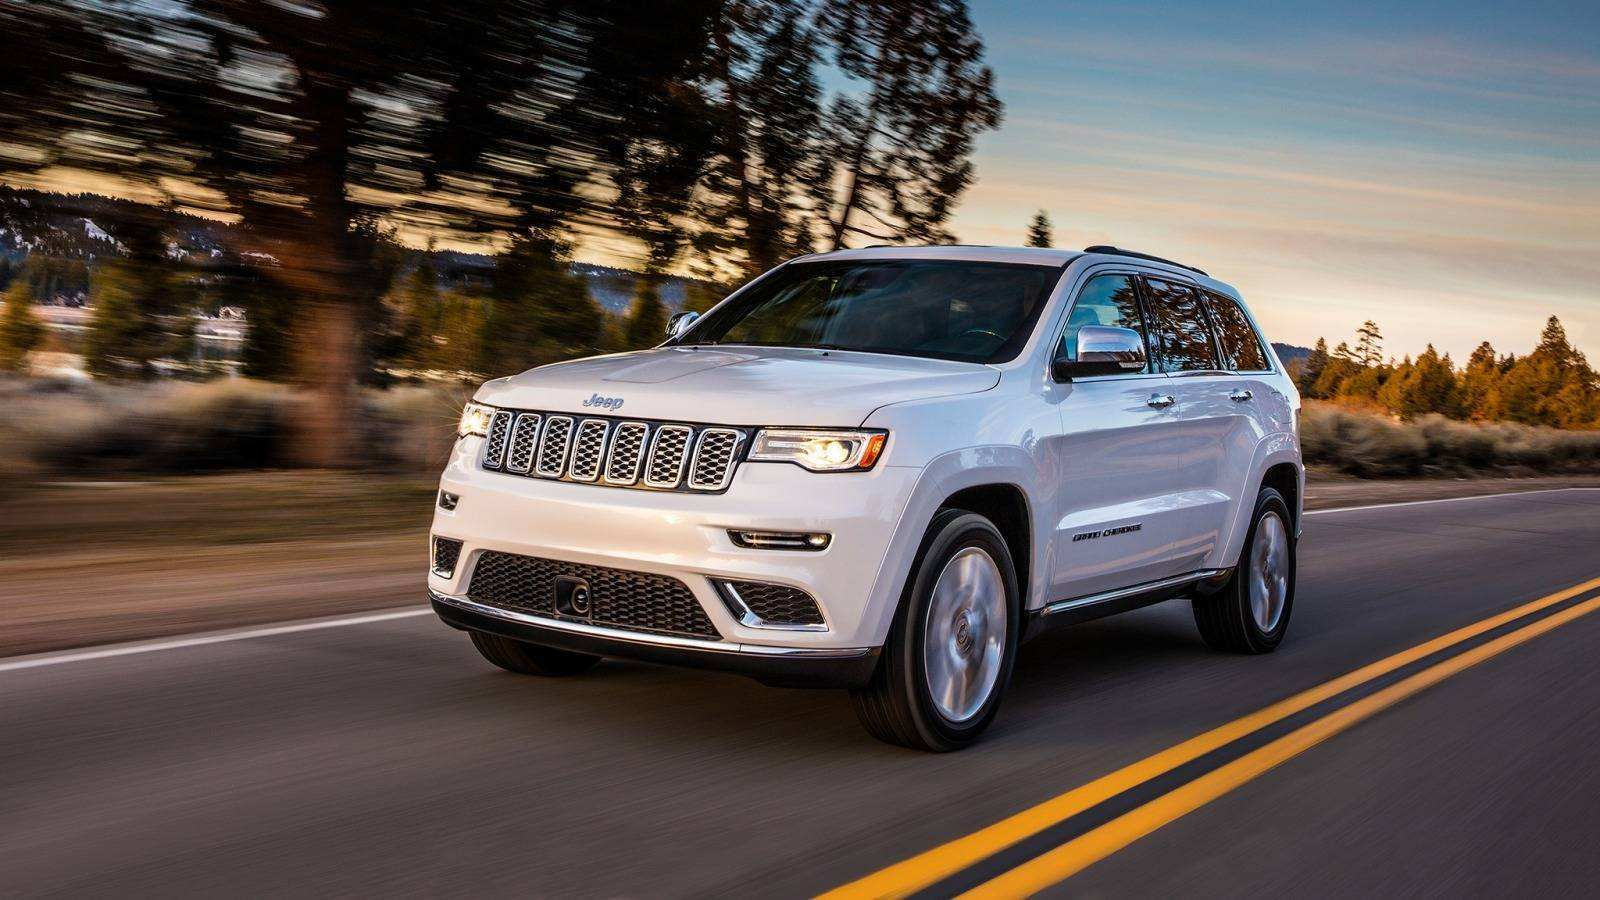 63 Concept of 2019 Jeep Grand Cherokee Spesification by 2019 Jeep Grand Cherokee